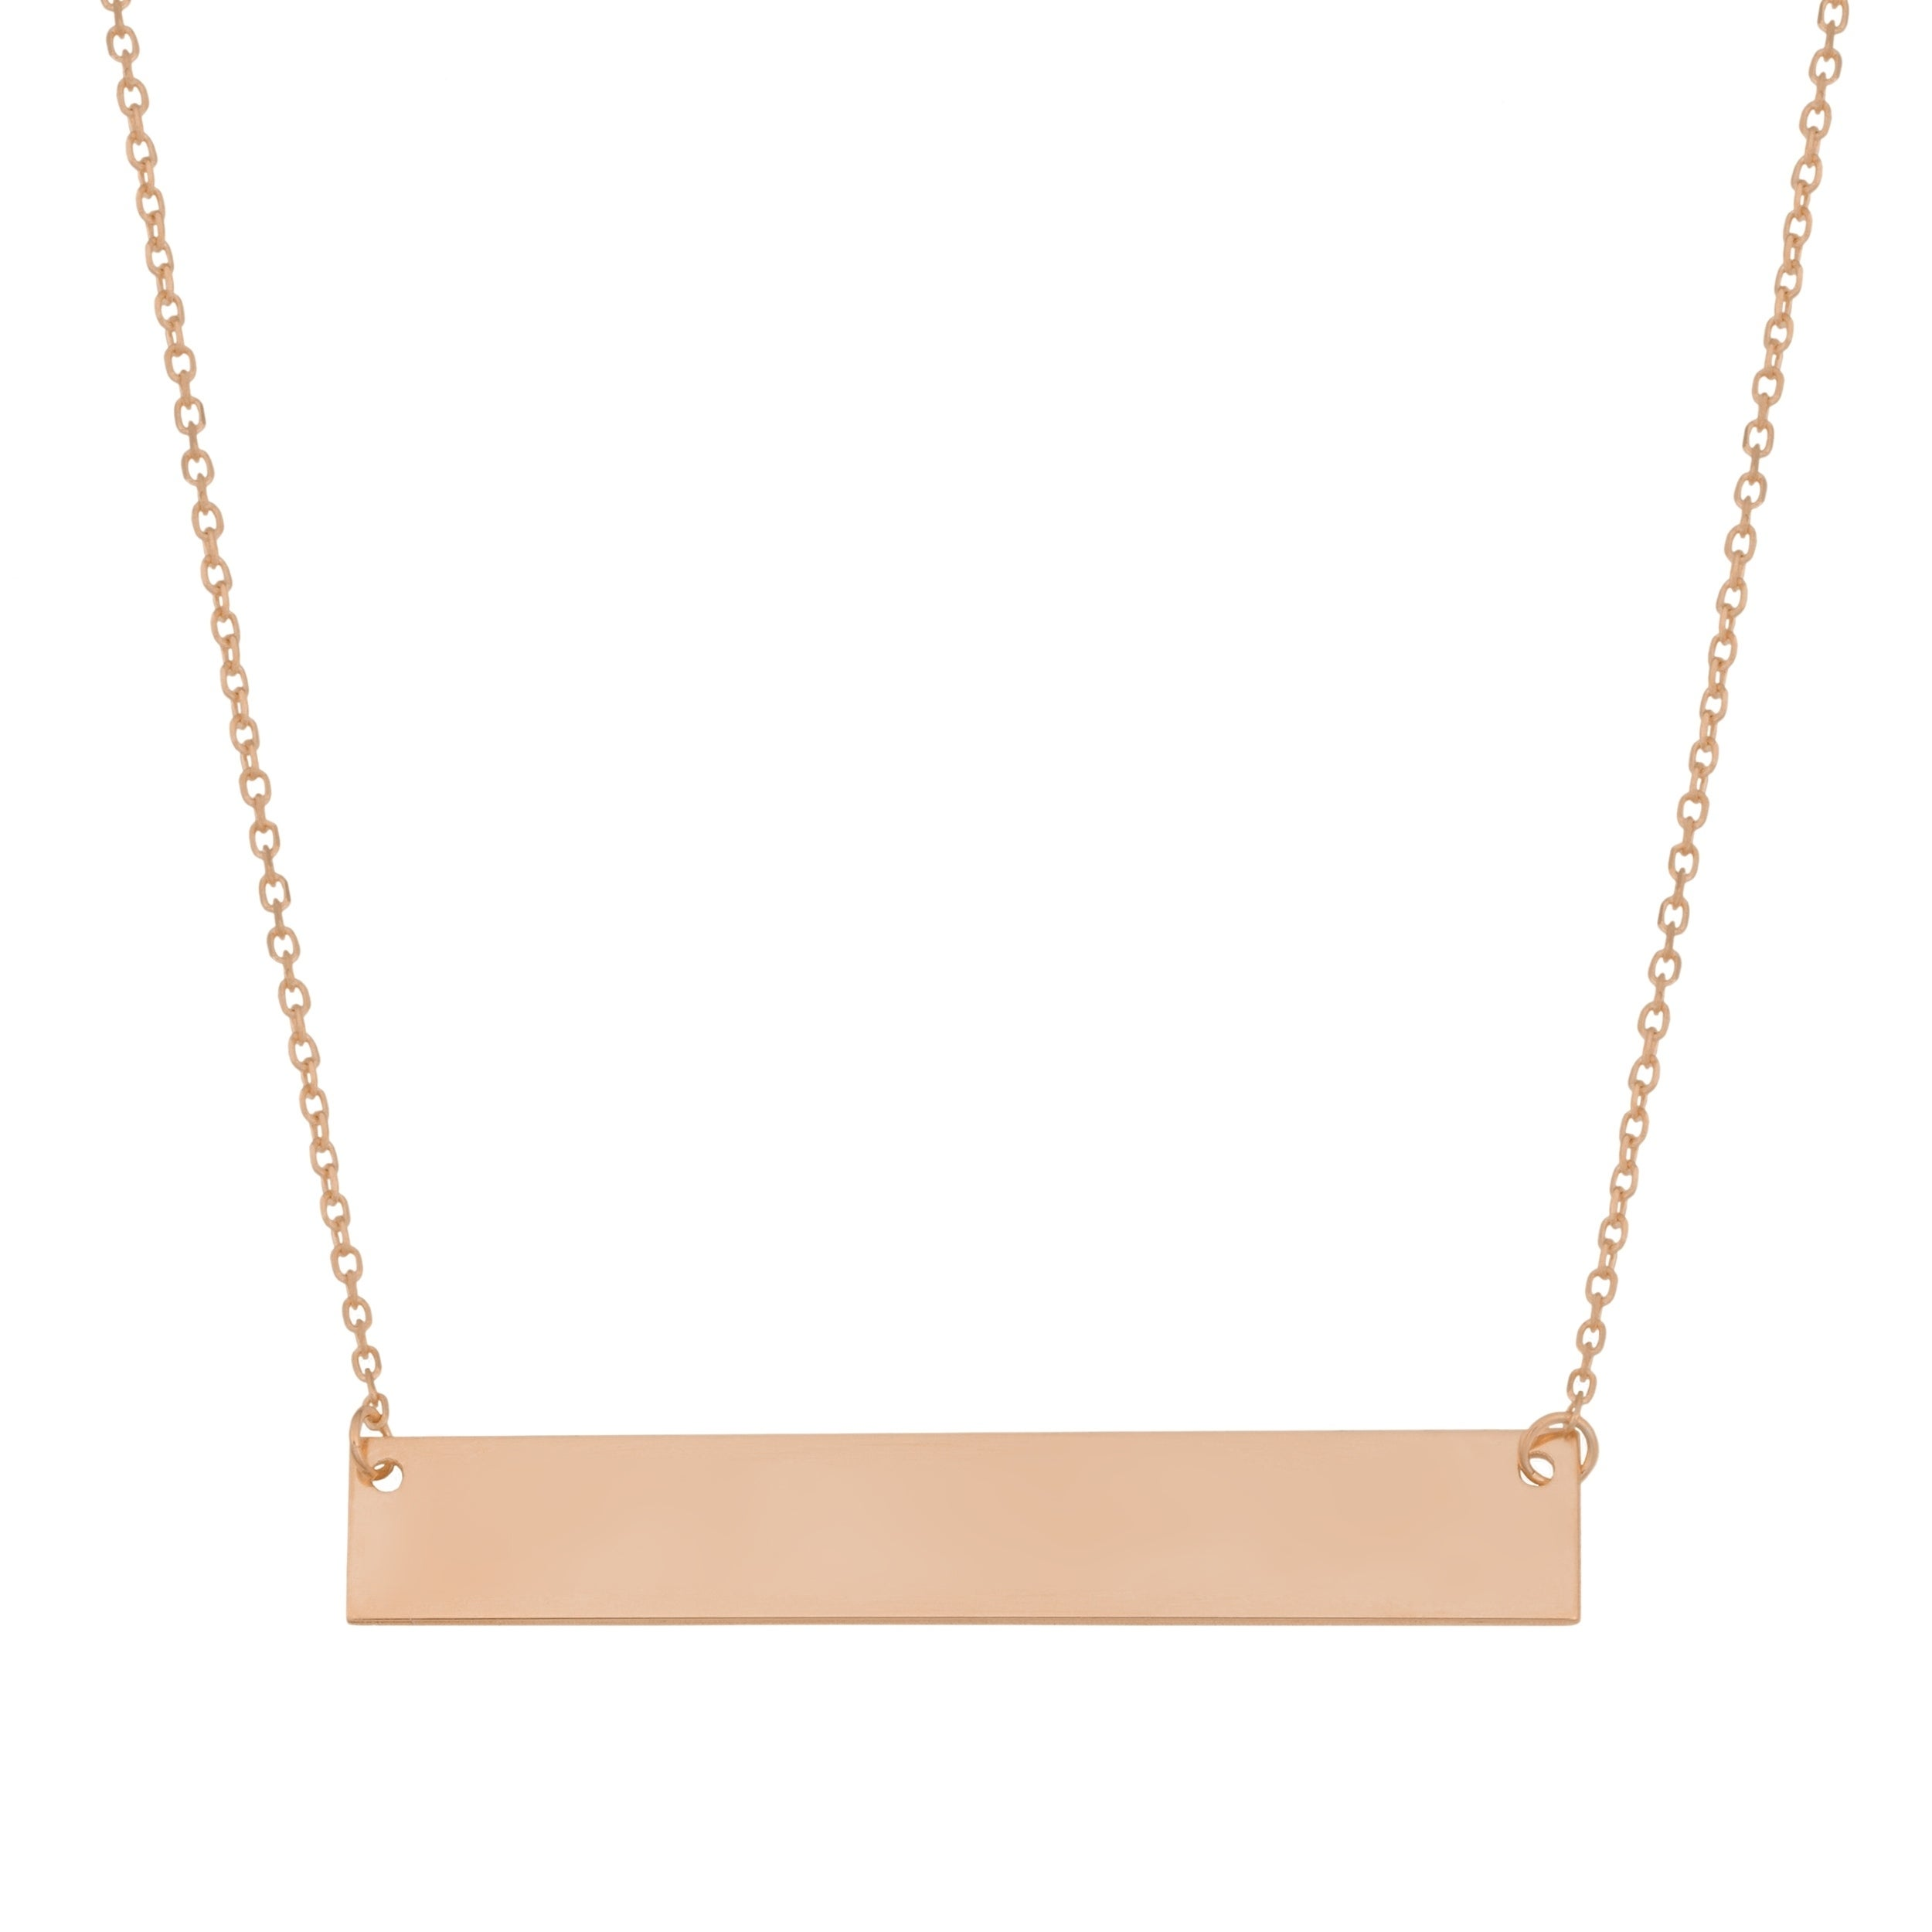 Personalized Necklace Custom Necklace chain 18 inch Horizontal Bar Necklace